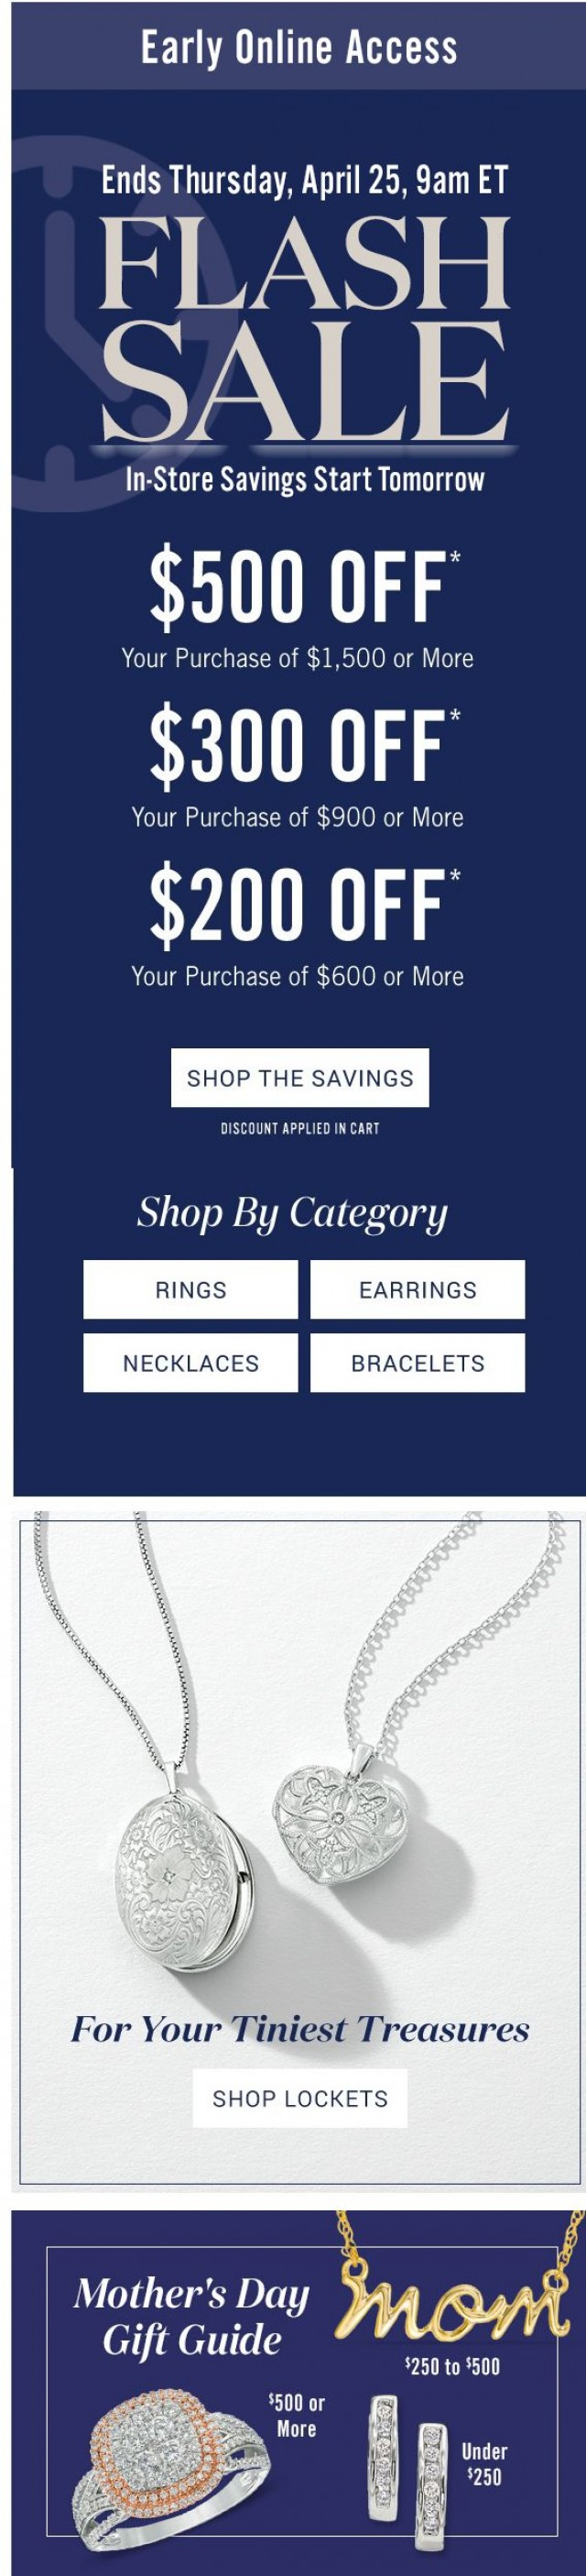 Coupon for: Peoples Jewellers - Early Online Access: Flash Sale Savings Up to $500